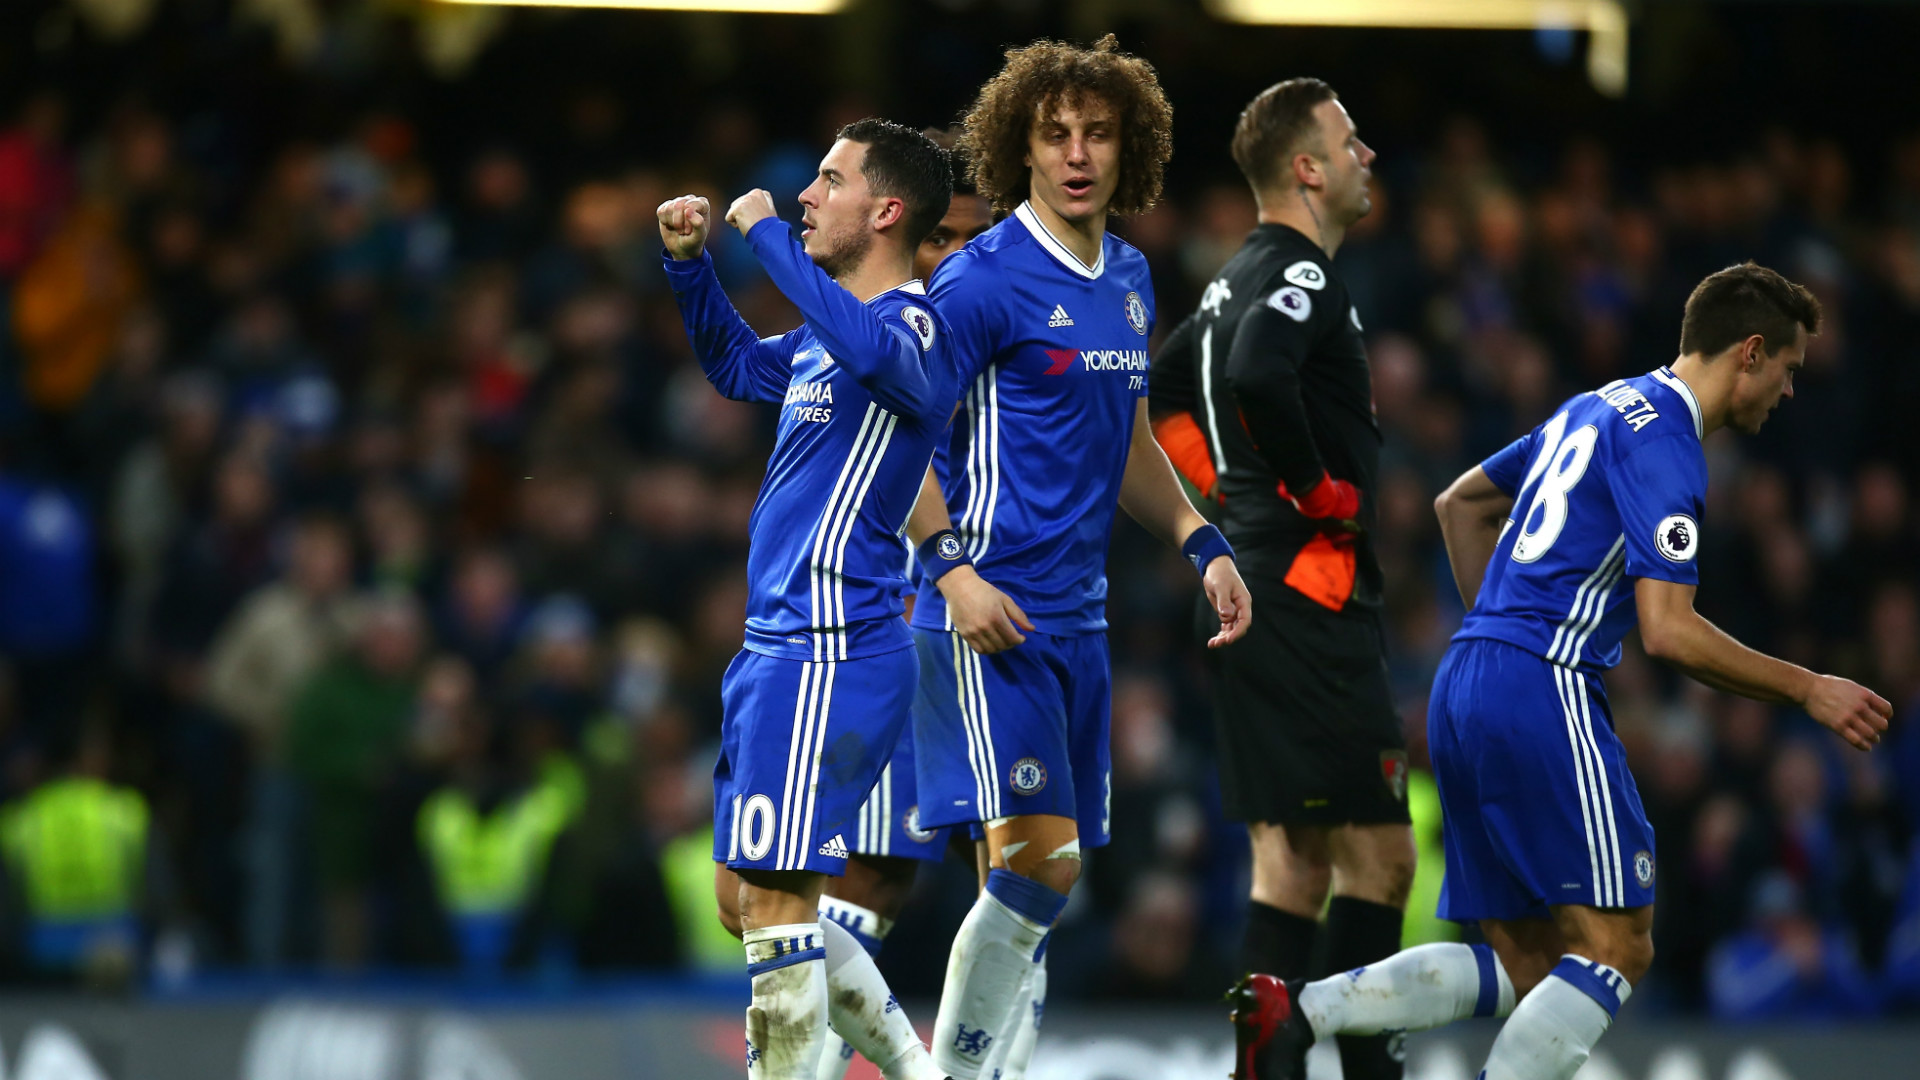 Leaders Chelsea won 3-0 at home to Bournemouth